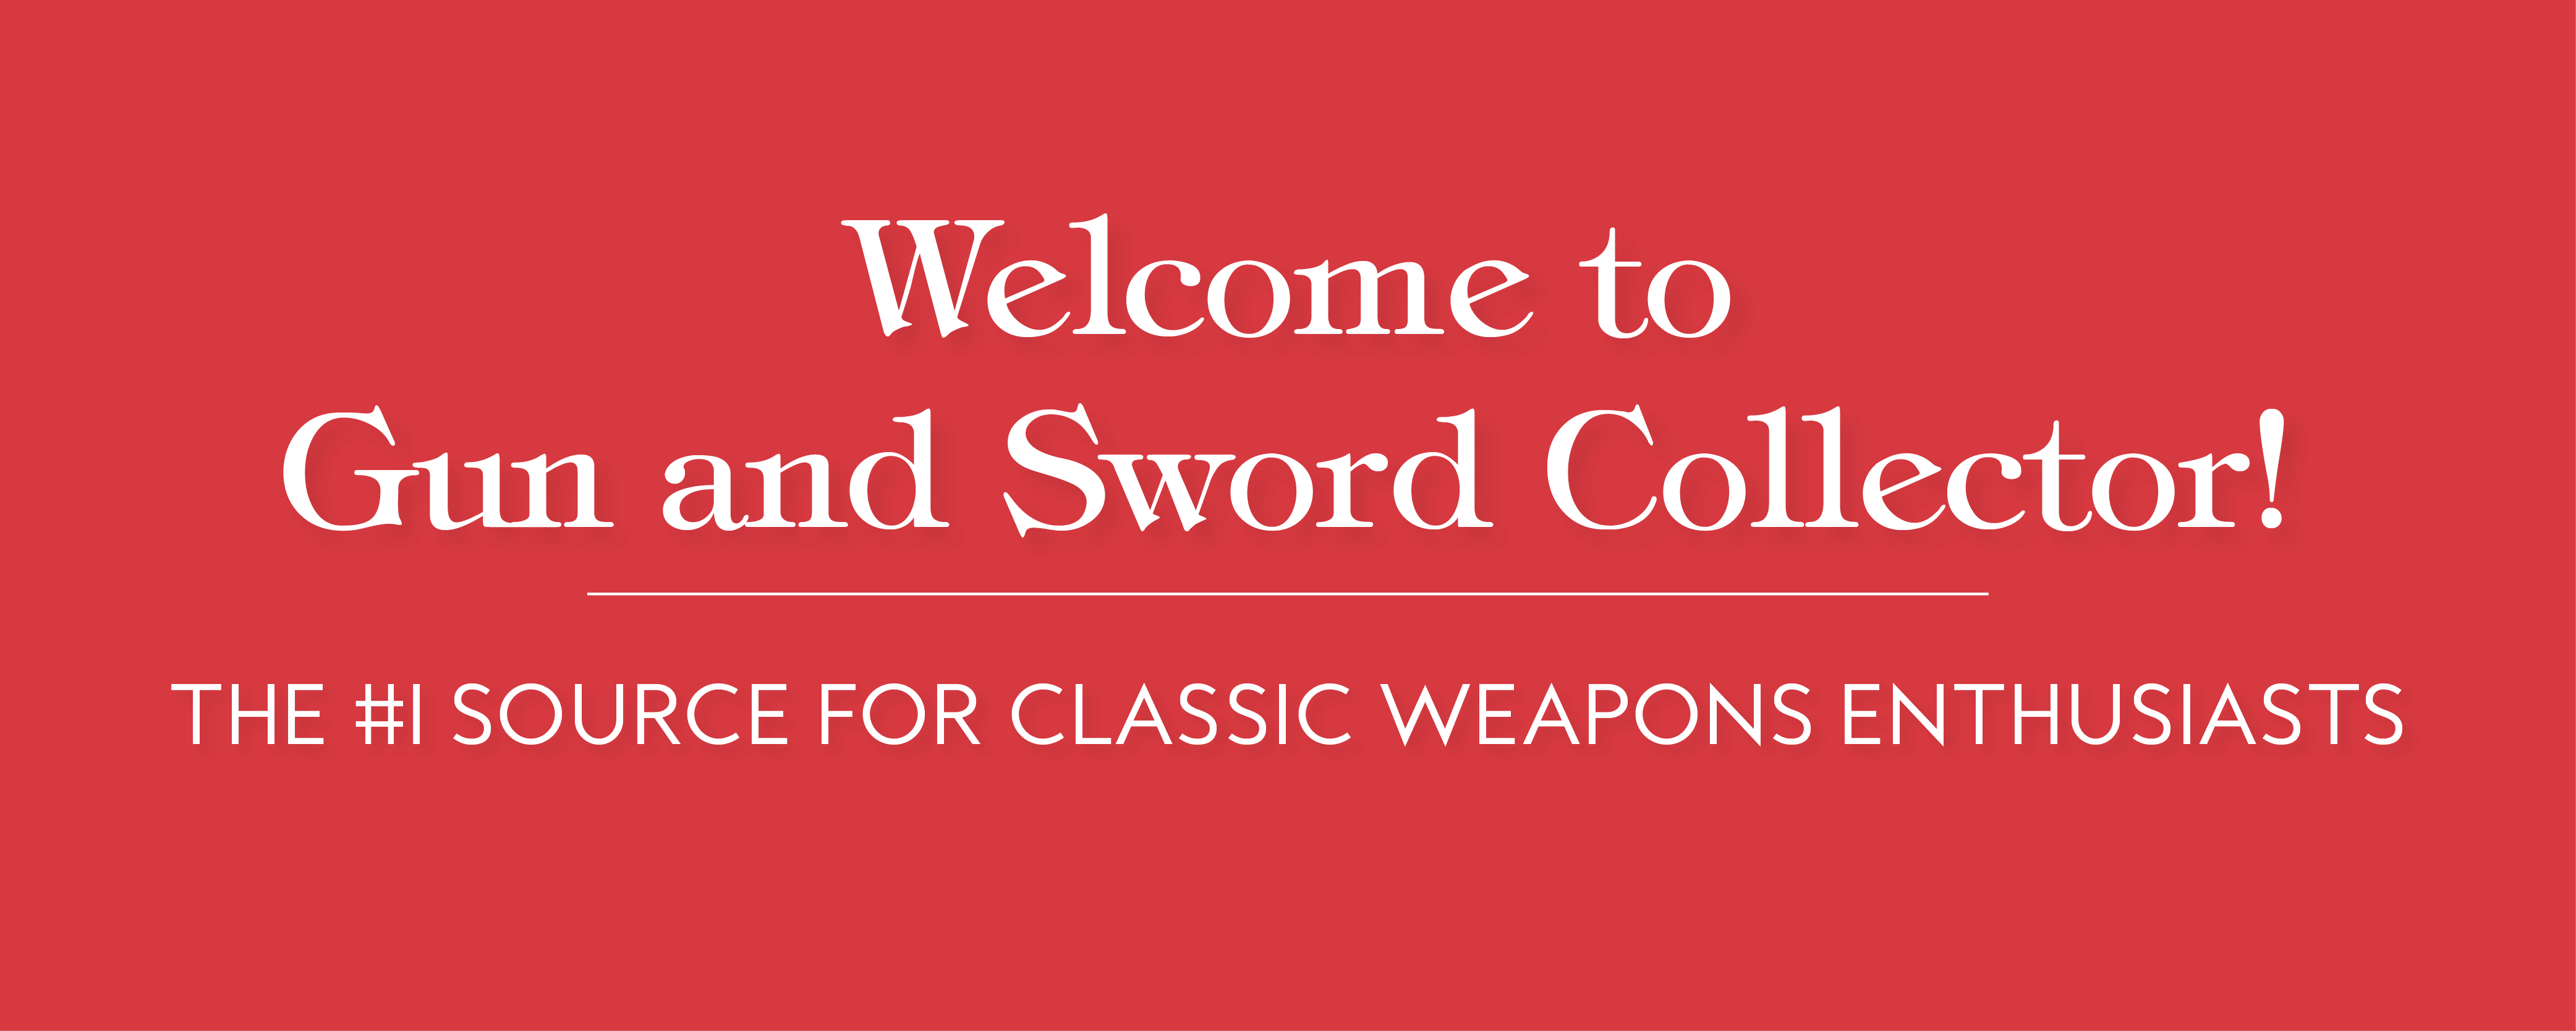 Welcome-to-Gun-and-Sword-Collector-Magazine